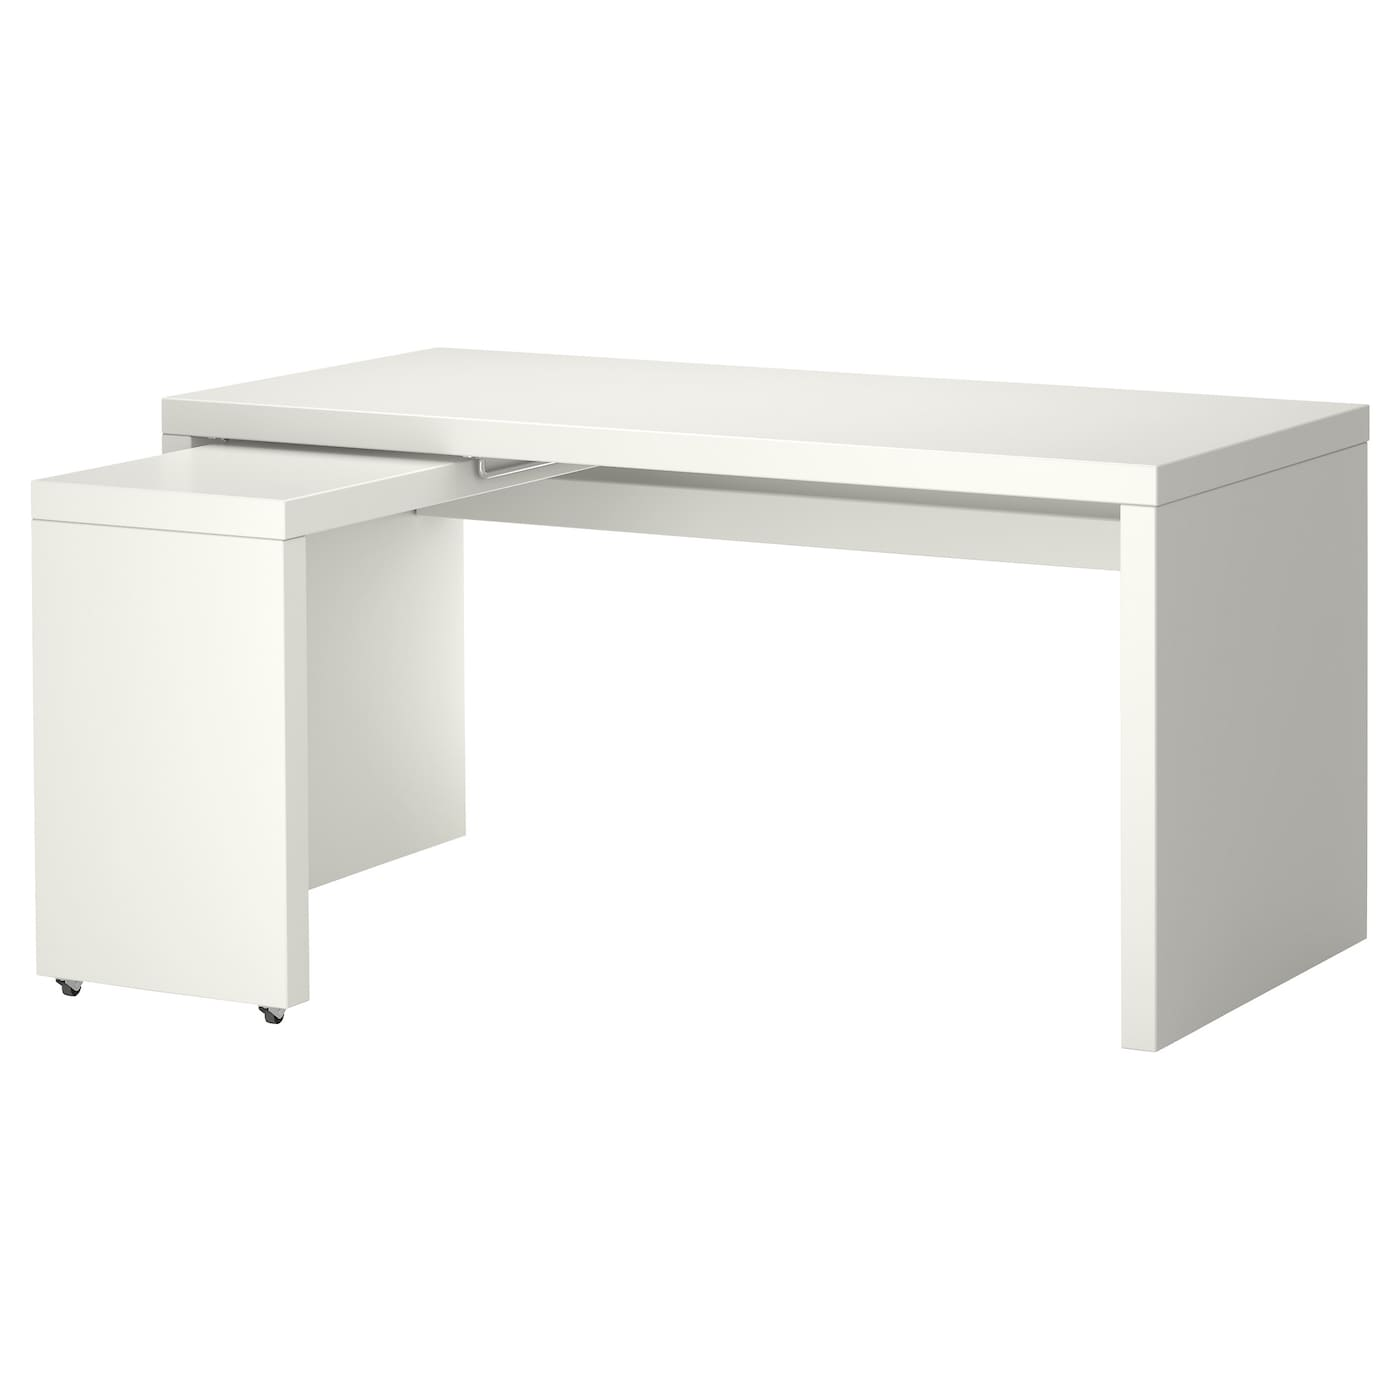 malm desk with pull out panel white 151 x 65 cm ikea. Black Bedroom Furniture Sets. Home Design Ideas